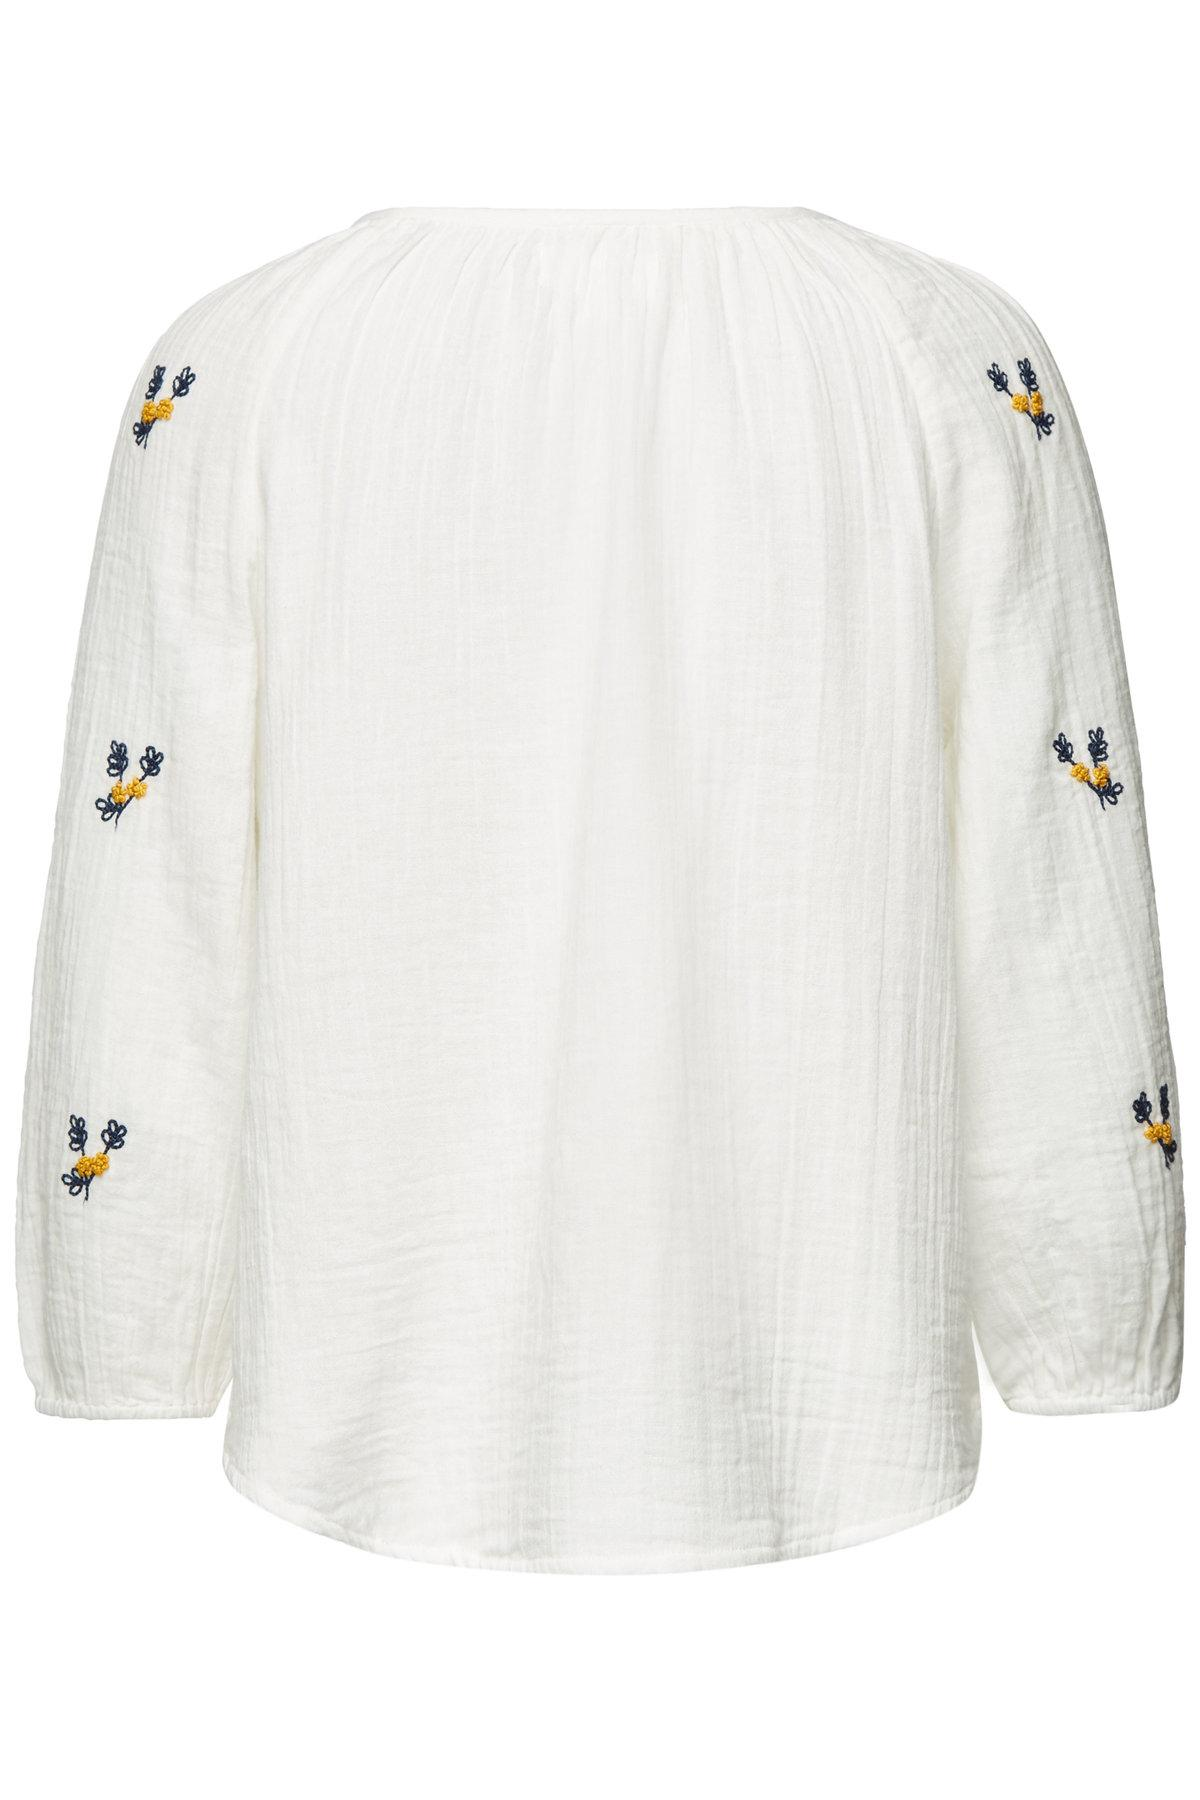 Velvet White Selma Top Lyst In Embroidered Cotton F13JTclK